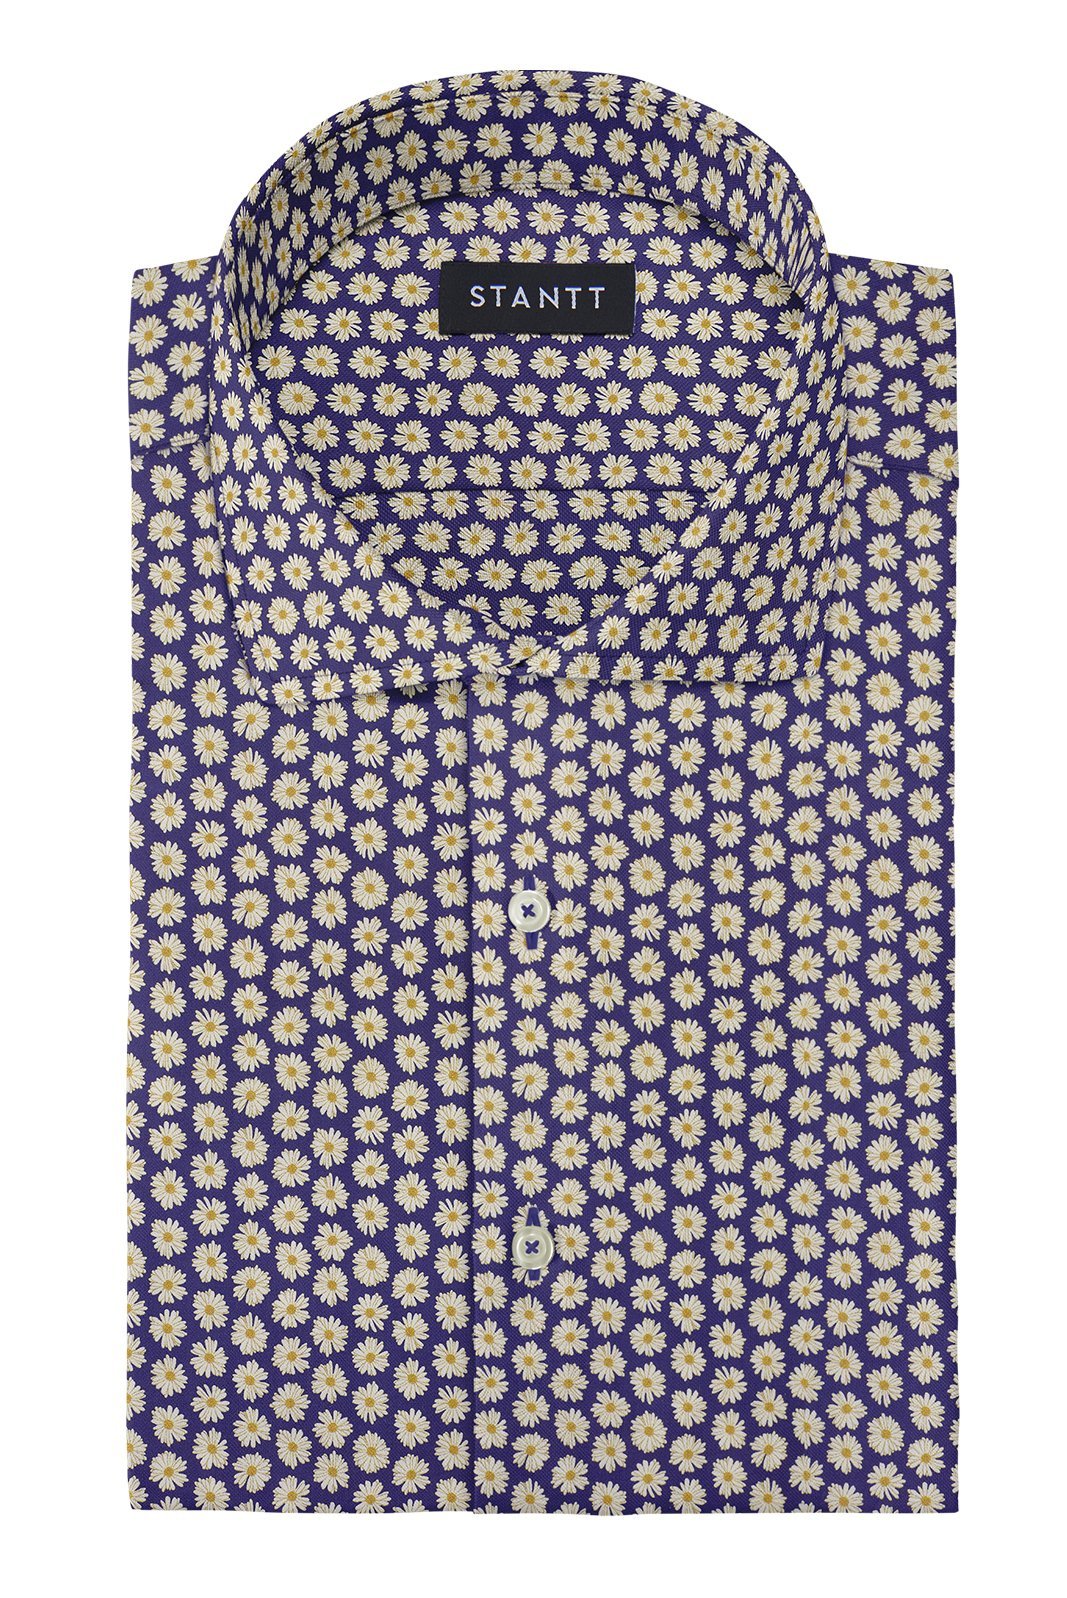 Daisy on Navy Printed Cotton: Cutaway Collar, French Cuff